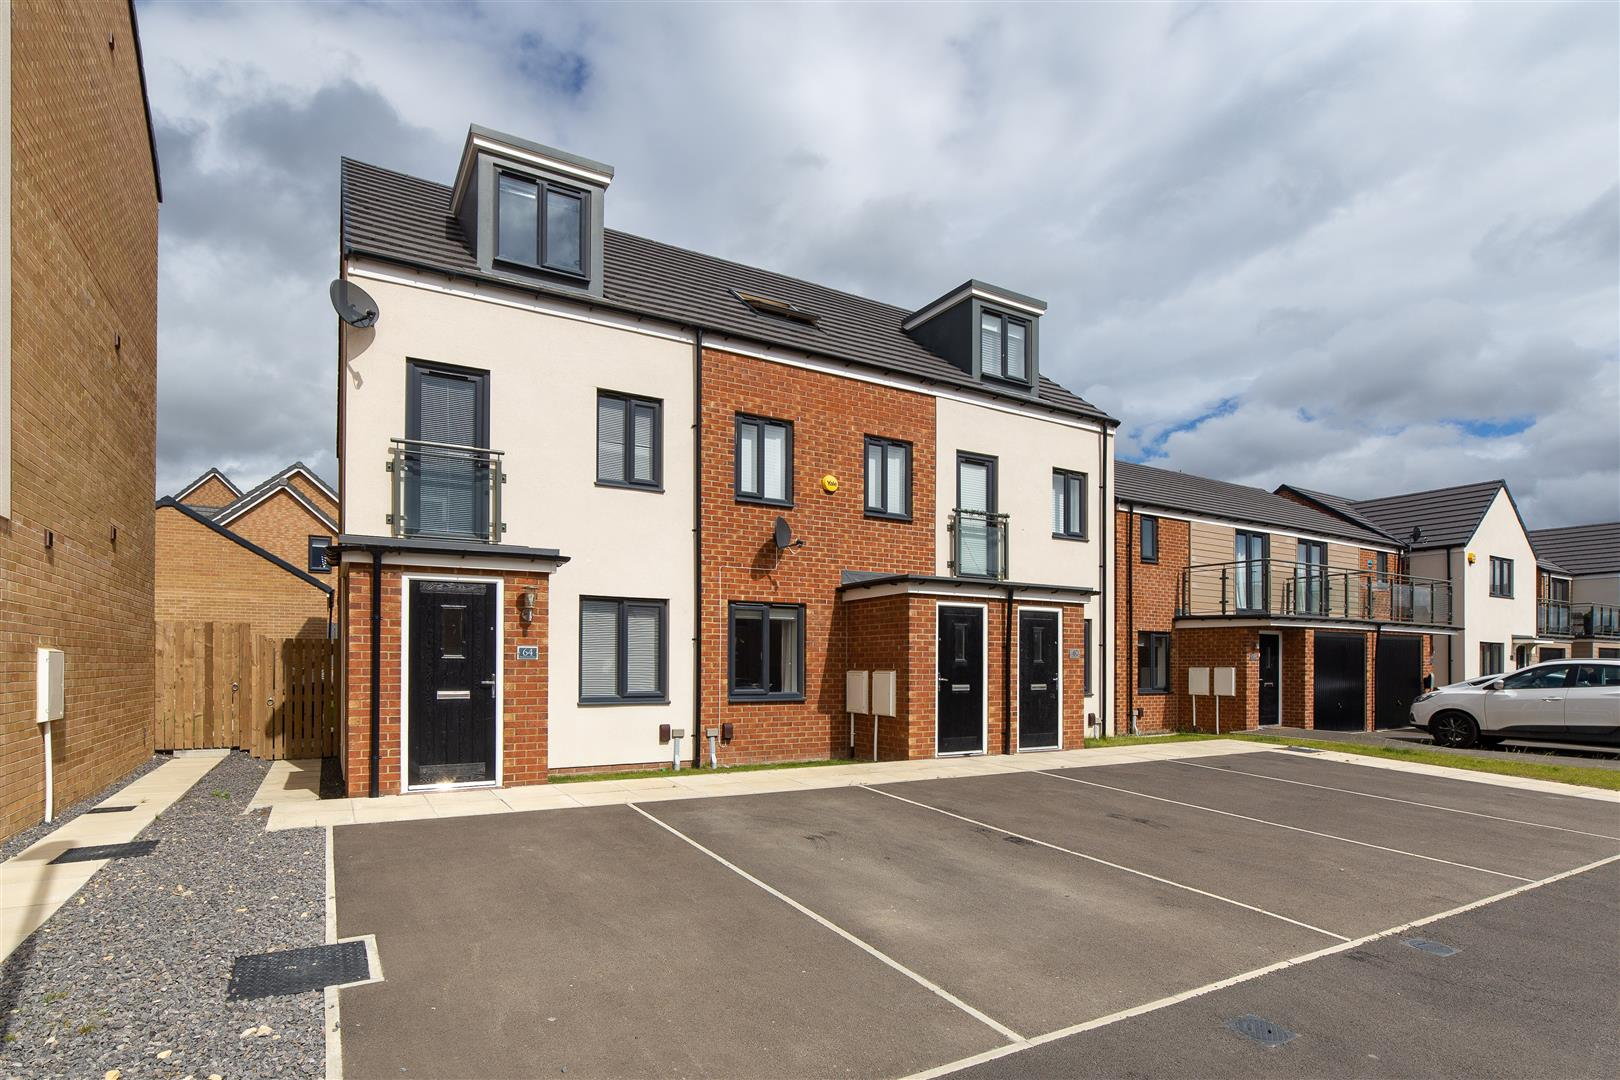 3 bed town house for sale in Newcastle Upon Tyne, NE13 9EG - Property Image 1